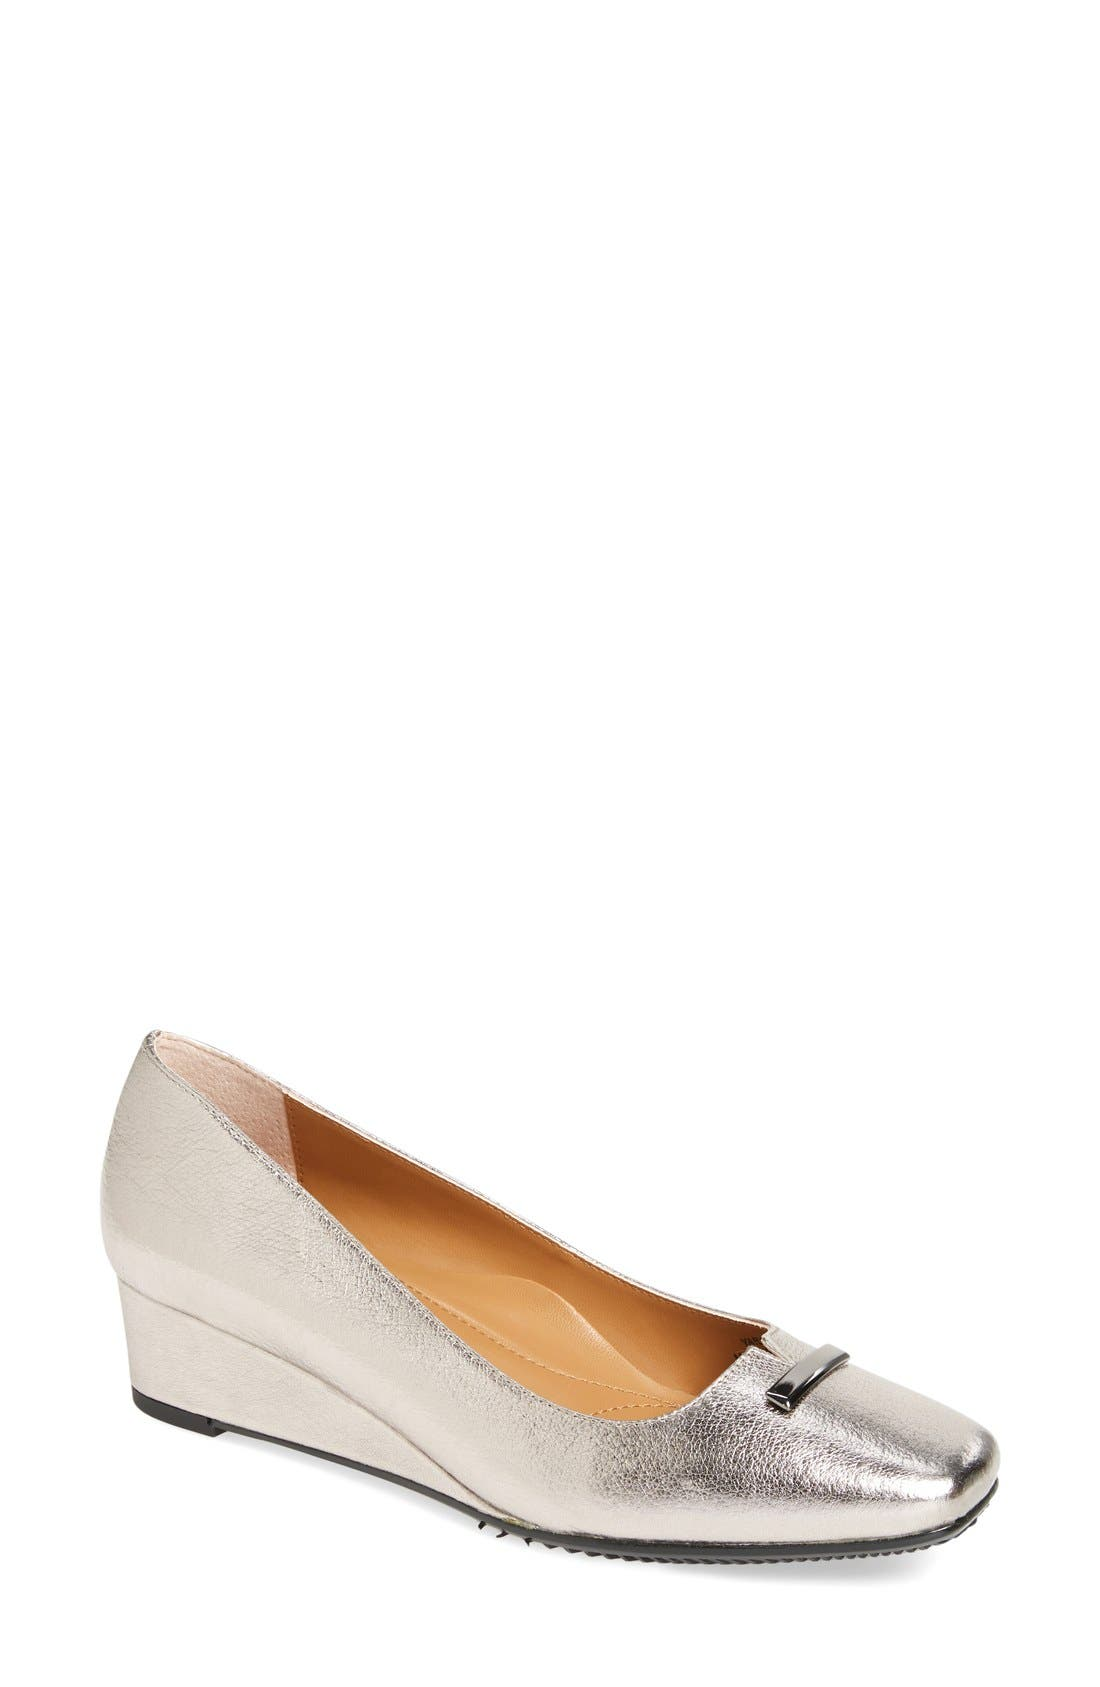 J. Reneé Yarall Square Toe Wedge (Women)